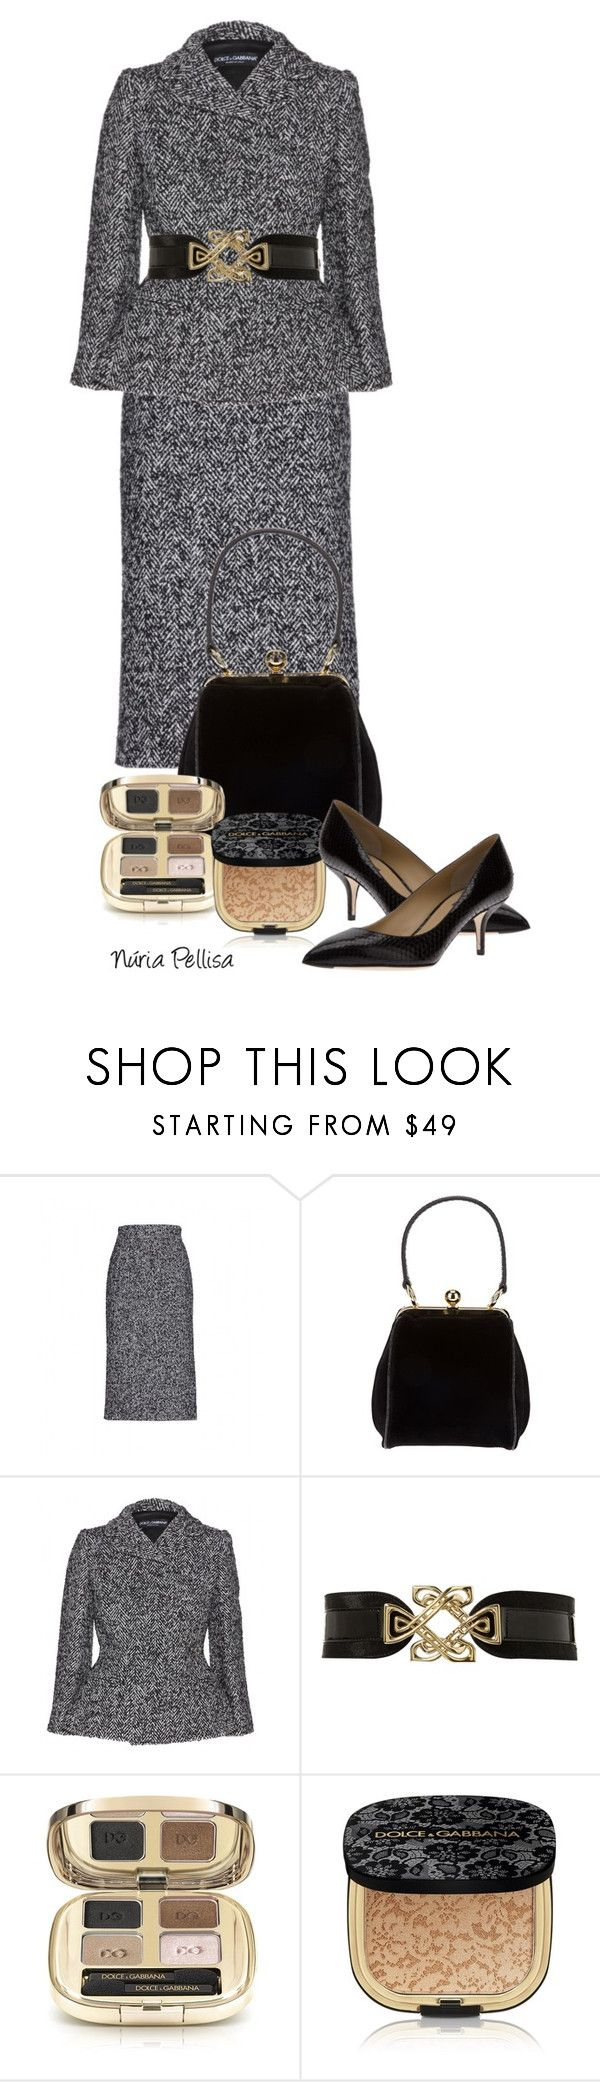 """Dolce & Gabbana"" by nuria-pellisa-salvado ❤ liked on Polyvore featuring Dolce&Gabbana, Biba, Elegant and tardor"